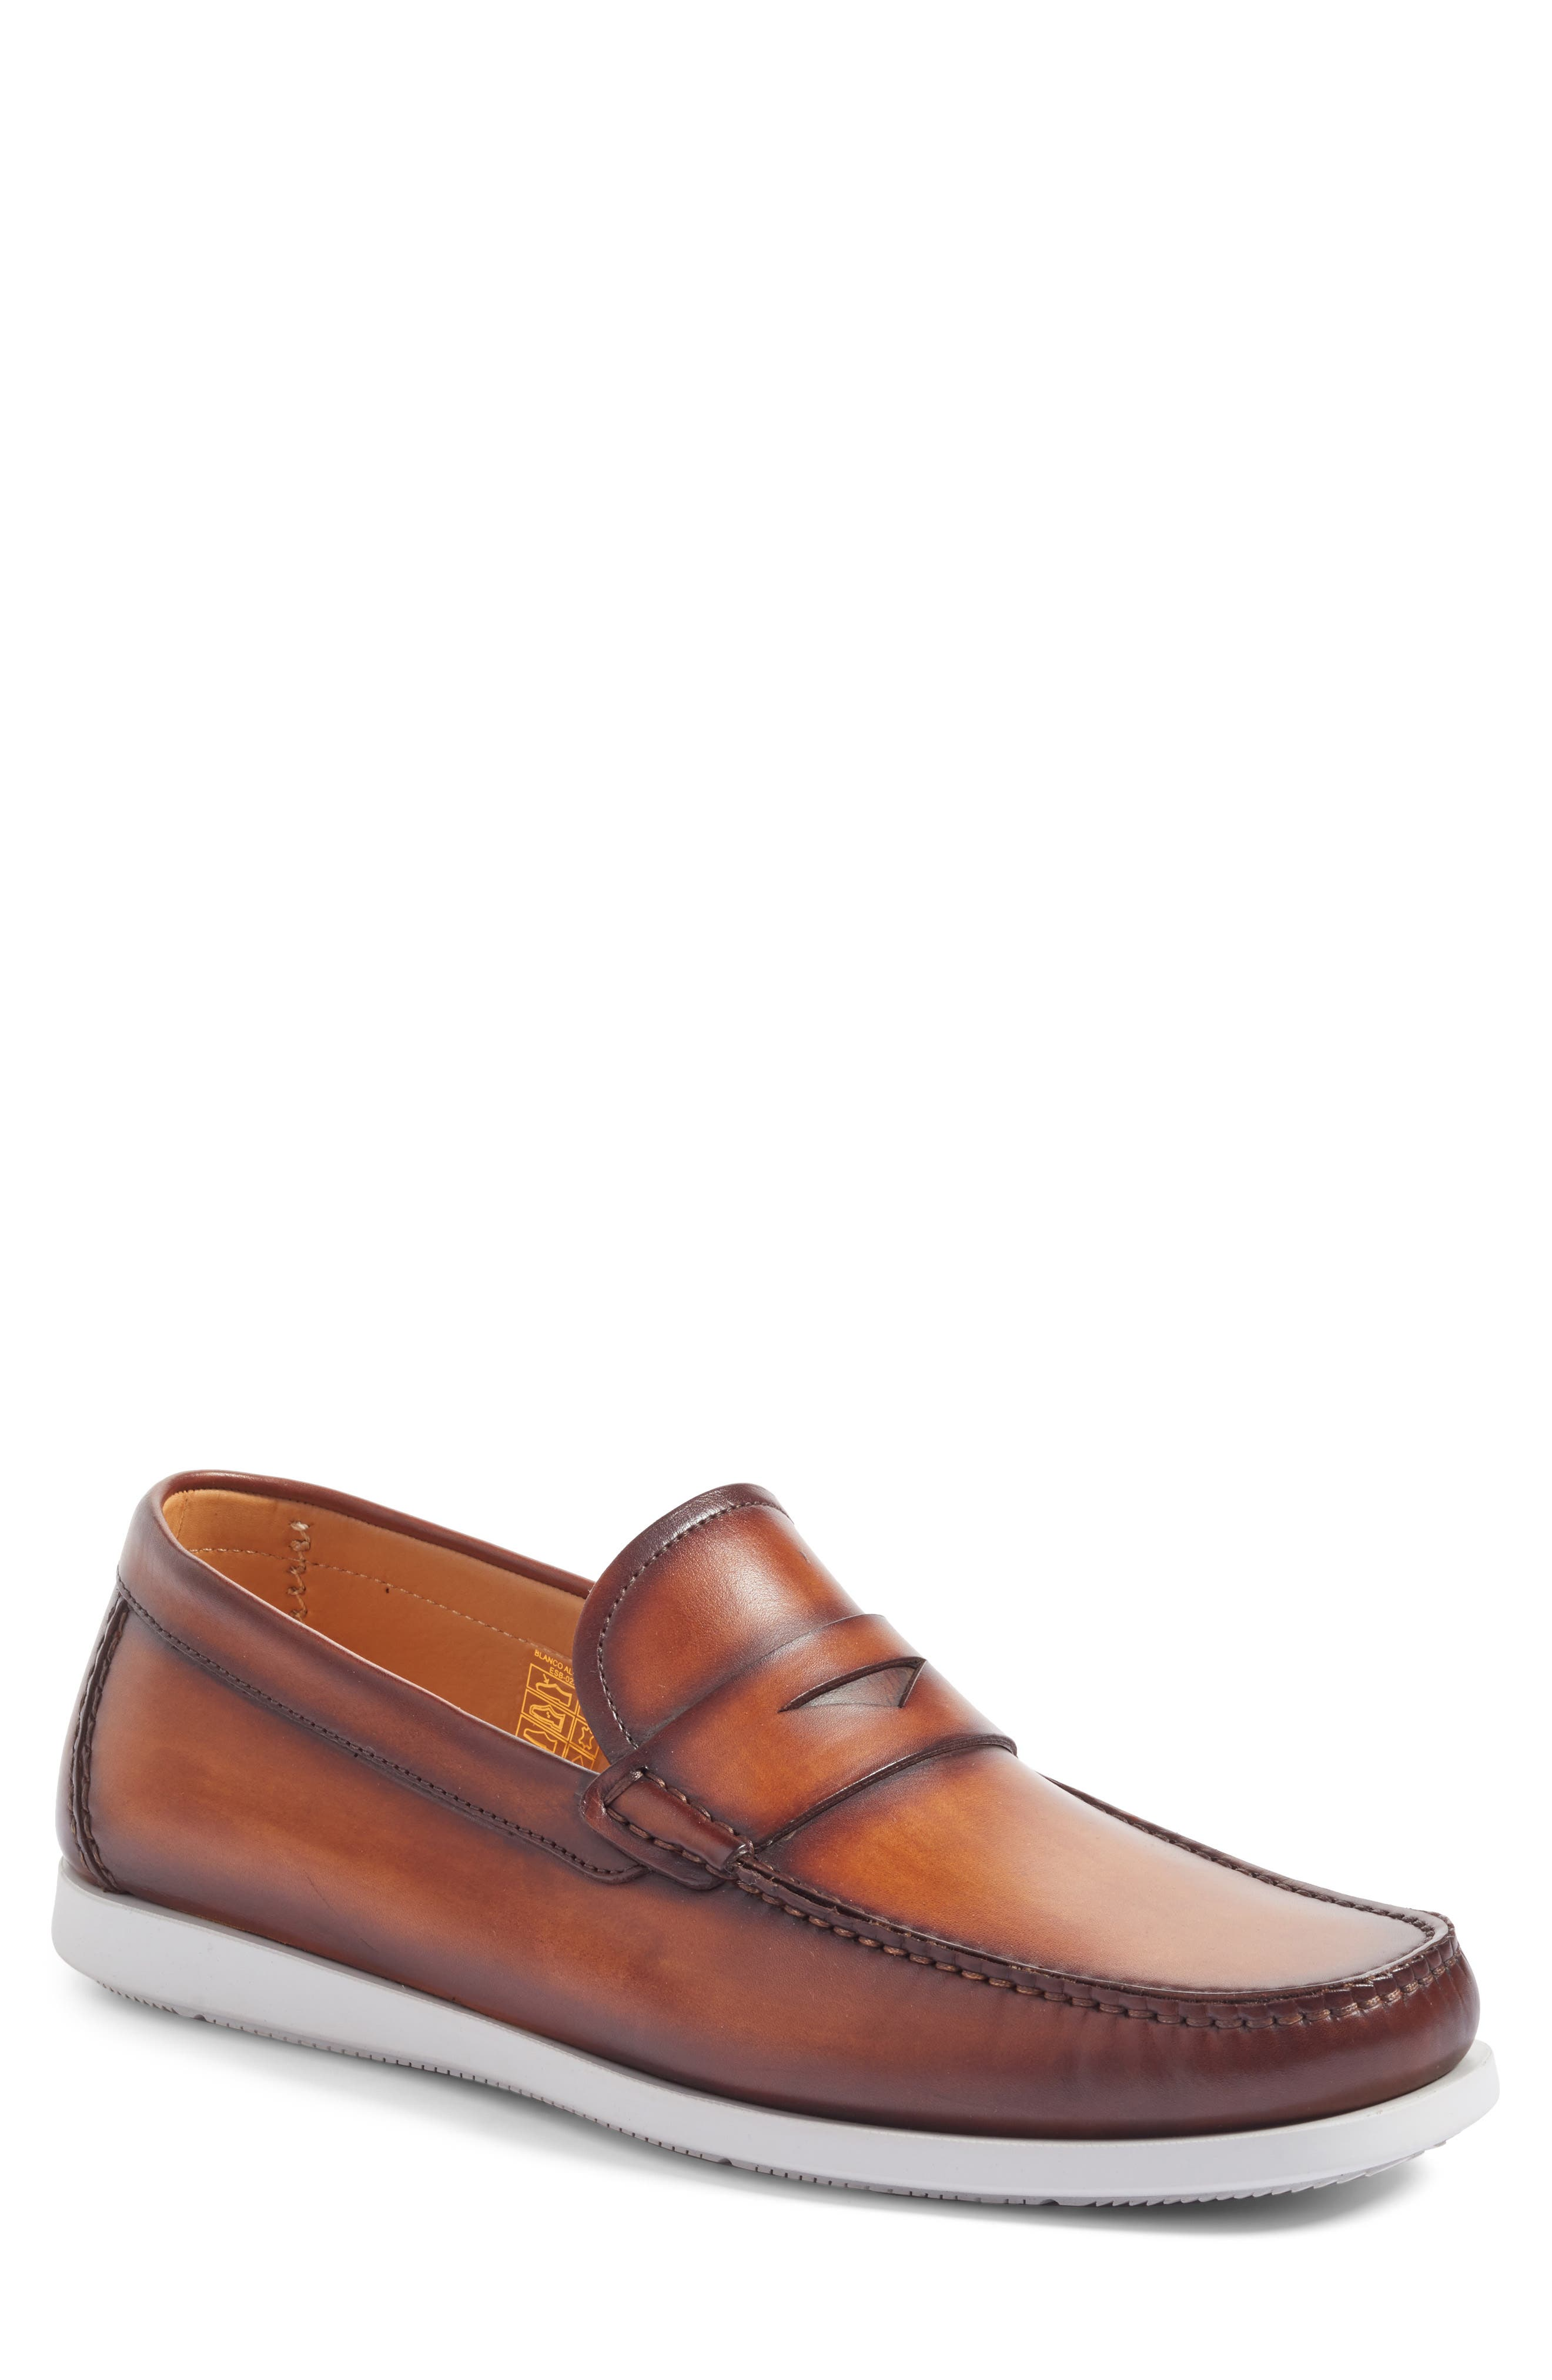 Laguna Penny Loafer,                         Main,                         color, MID-BROWN LEATHER